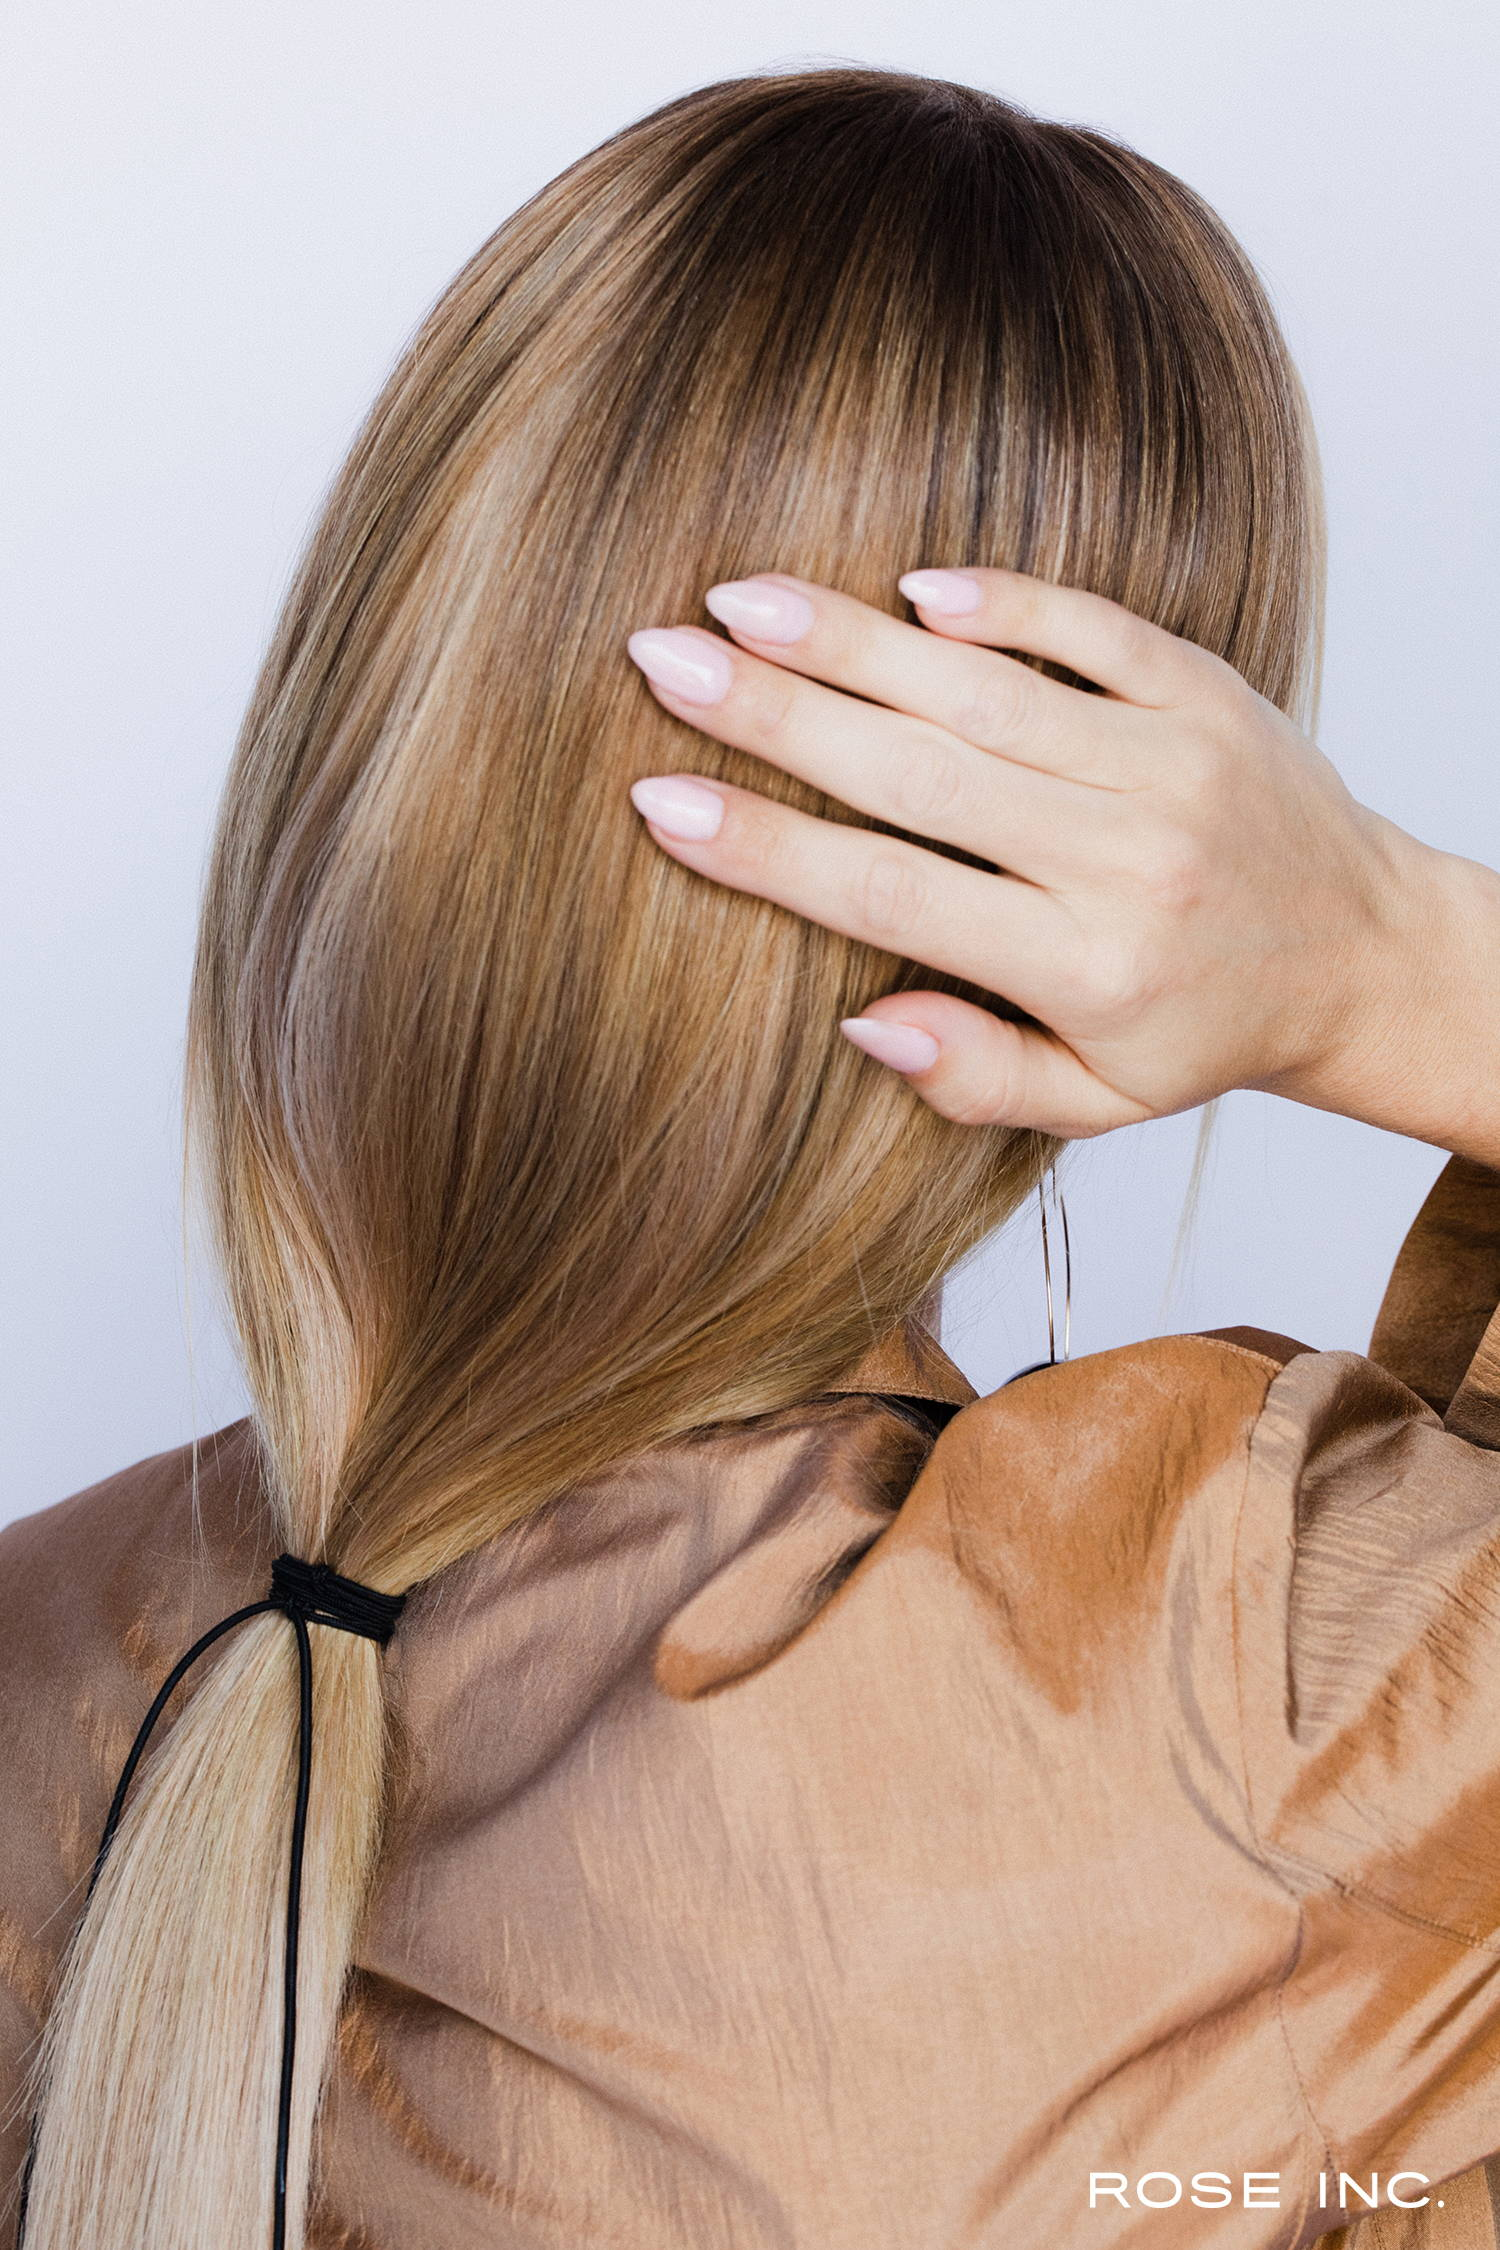 Off-Duty hair: the low, loose ponytail - Rose Inc.